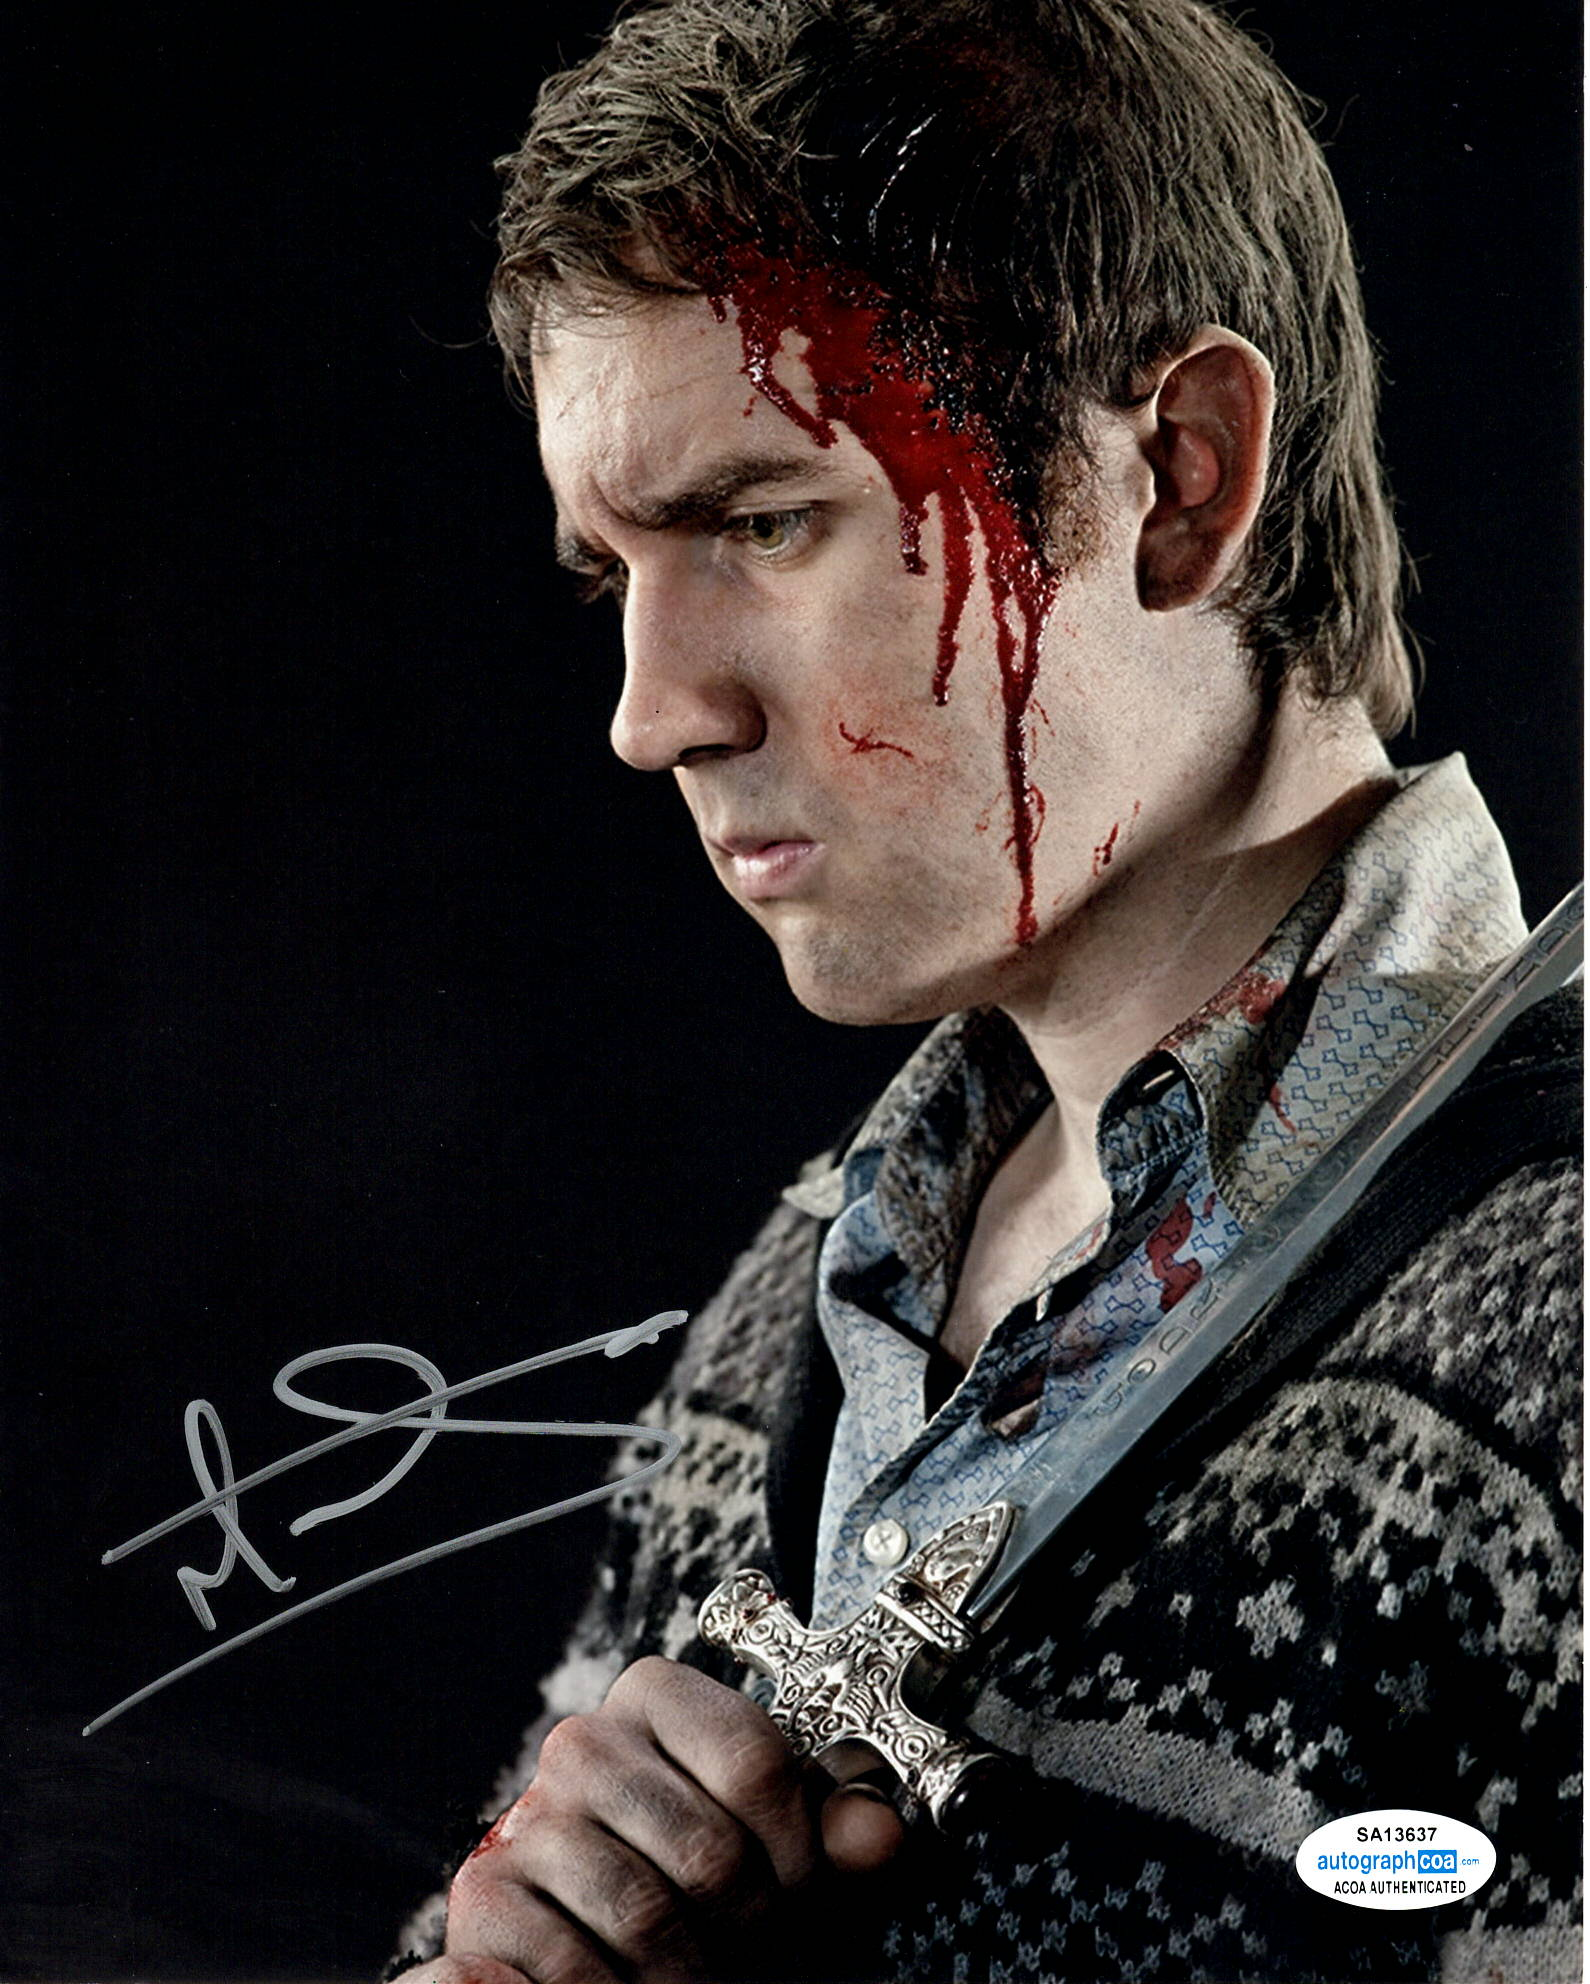 Matthew Matt Lewis Harry Potter Signed Autograph 8x10 Photo #6 - Outlaw Hobbies Authentic Autographs